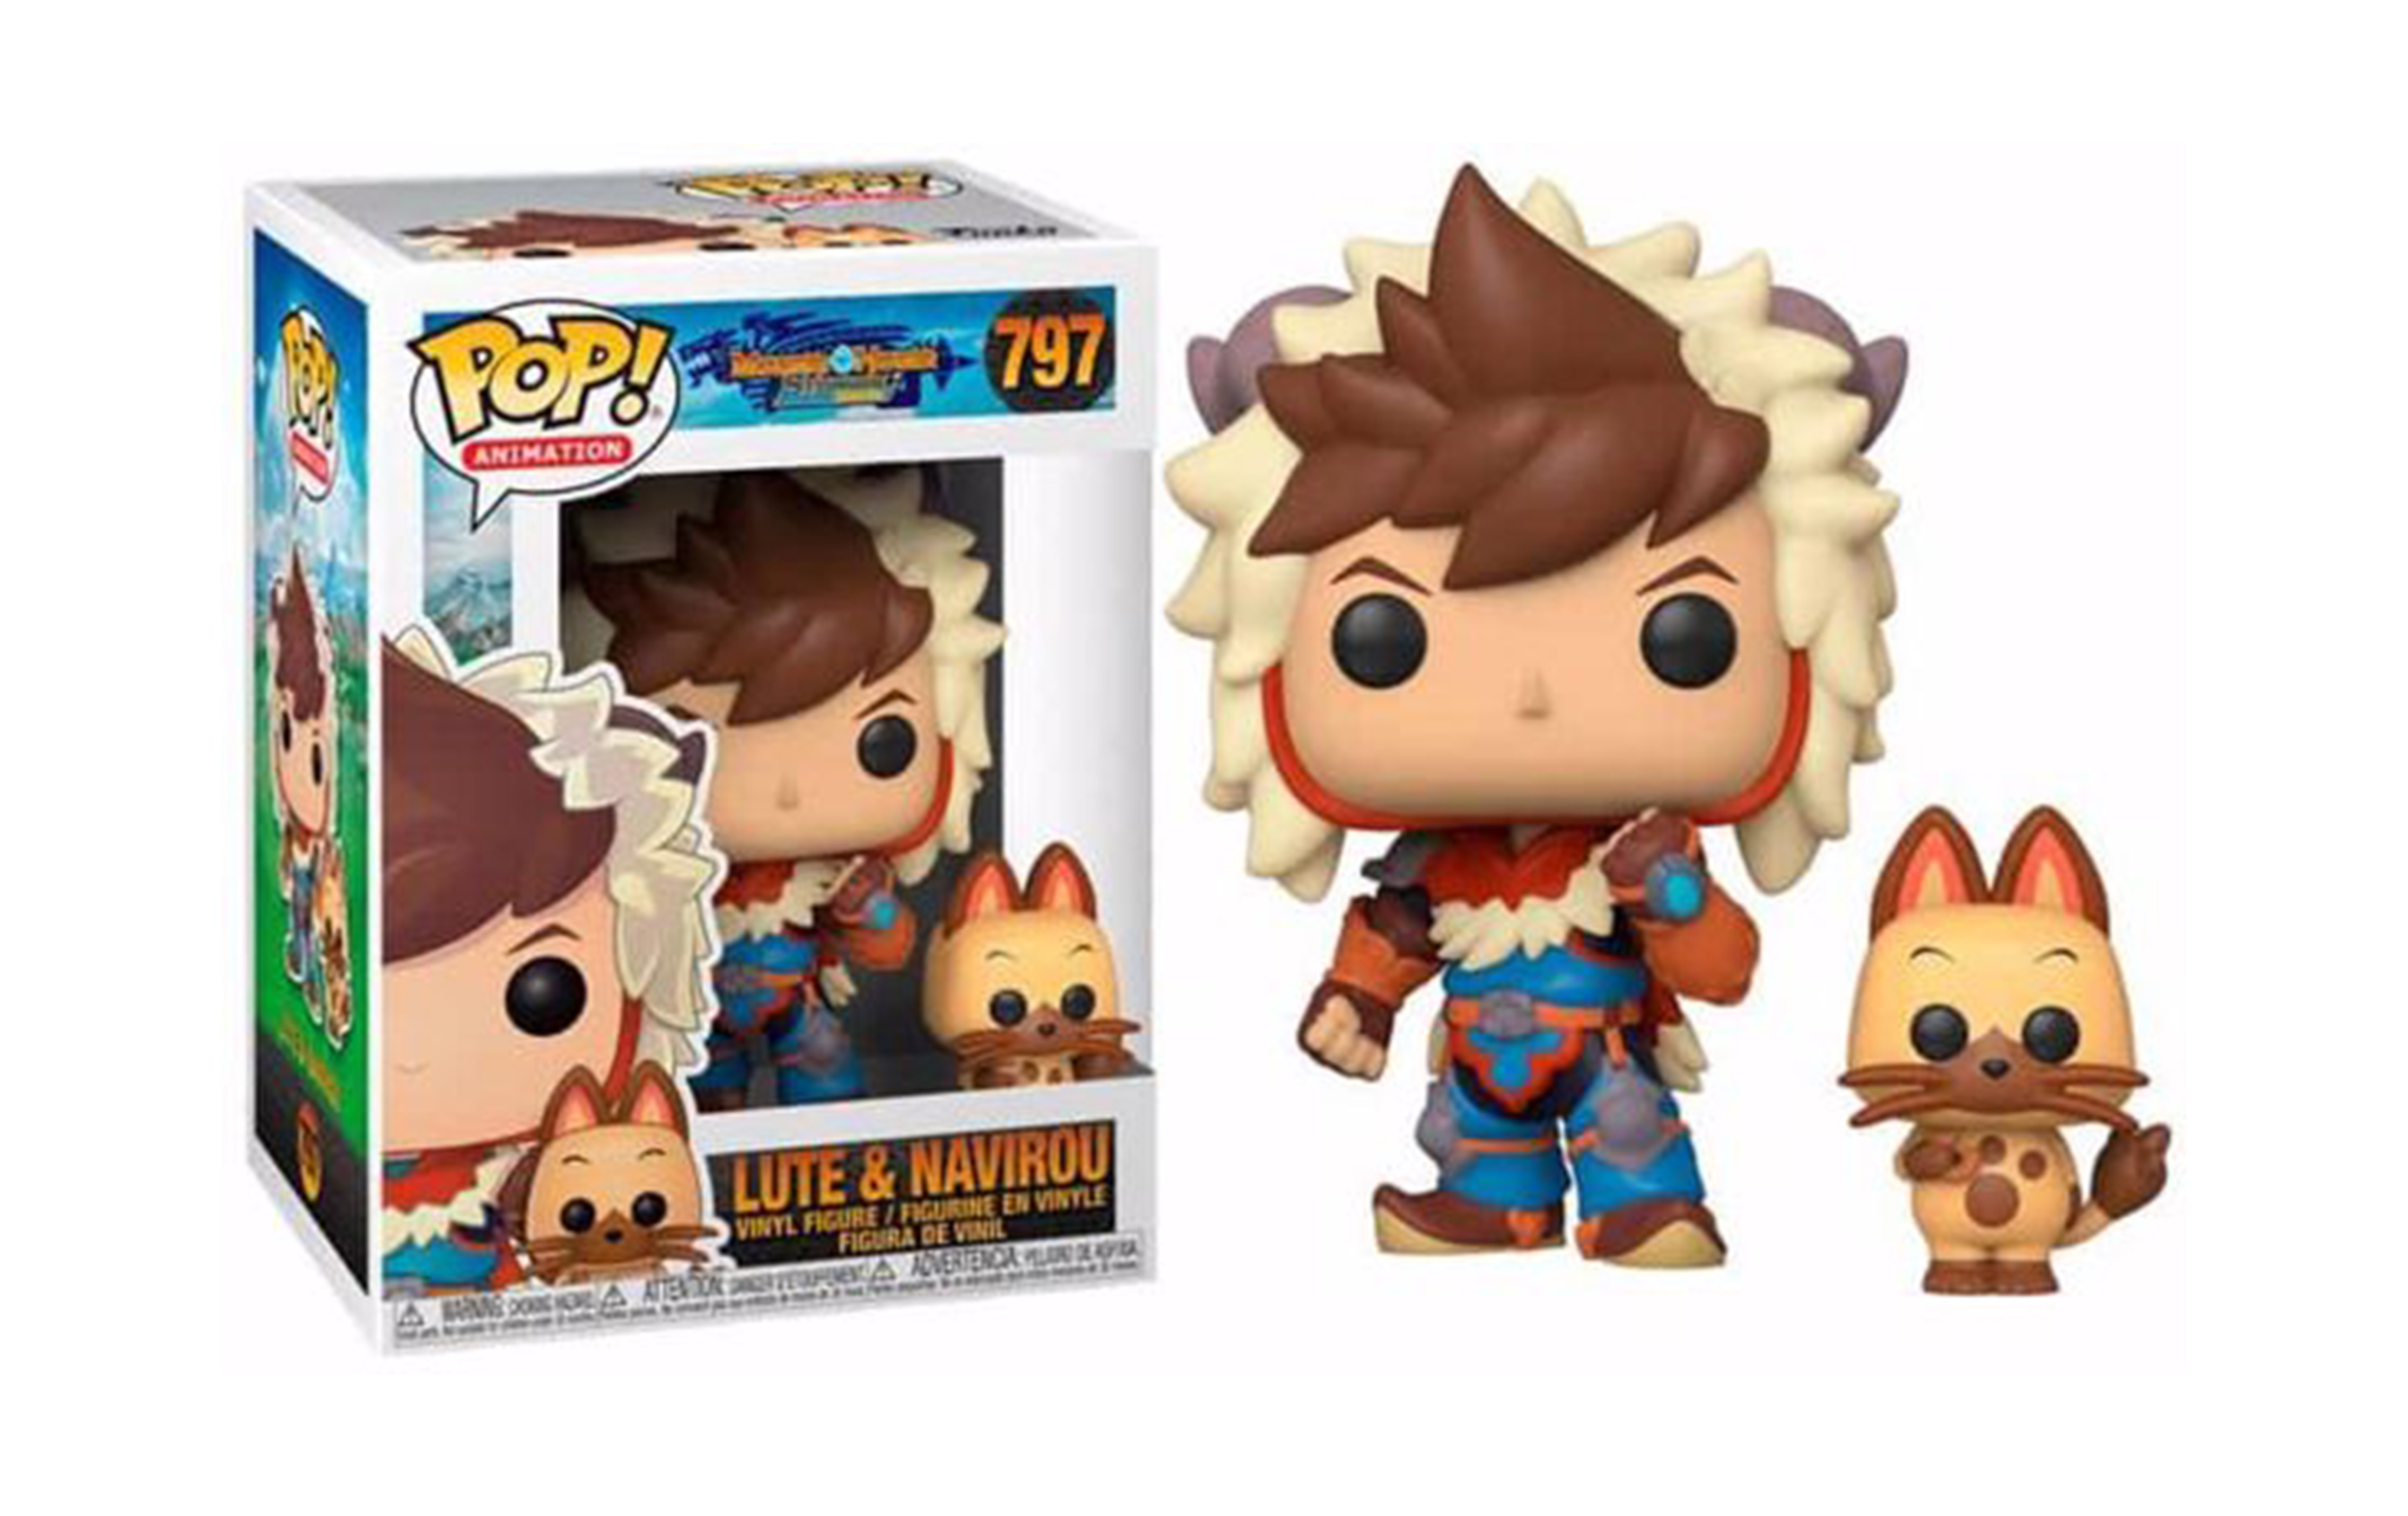 Monster Hunter Lute and Navirou 797 Funko POP Vinyl Figure